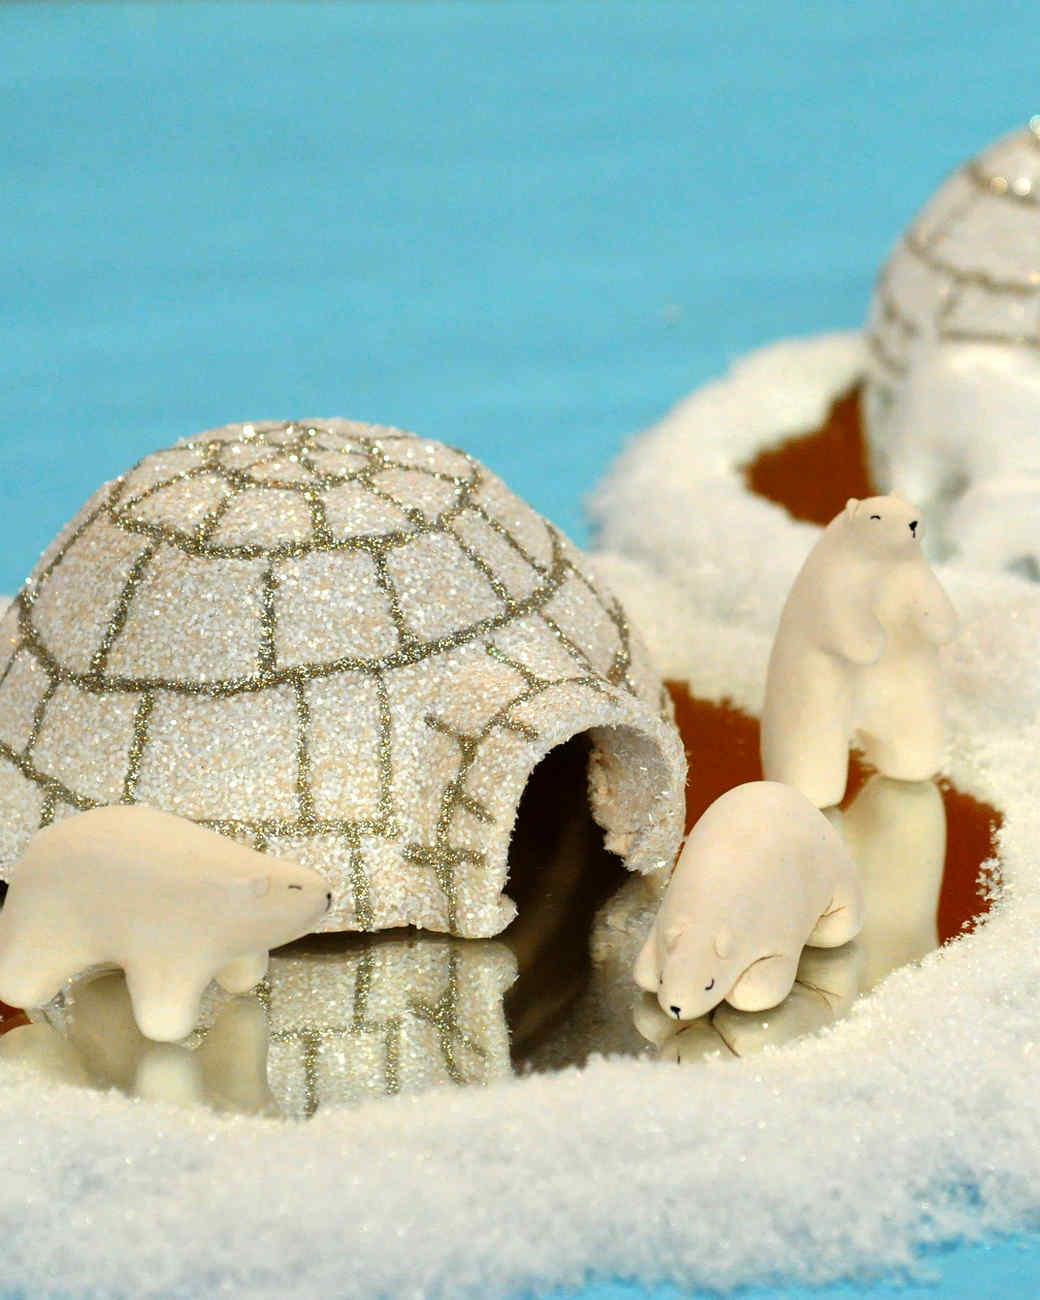 homemade-igloo-2-mslb7063.jpg